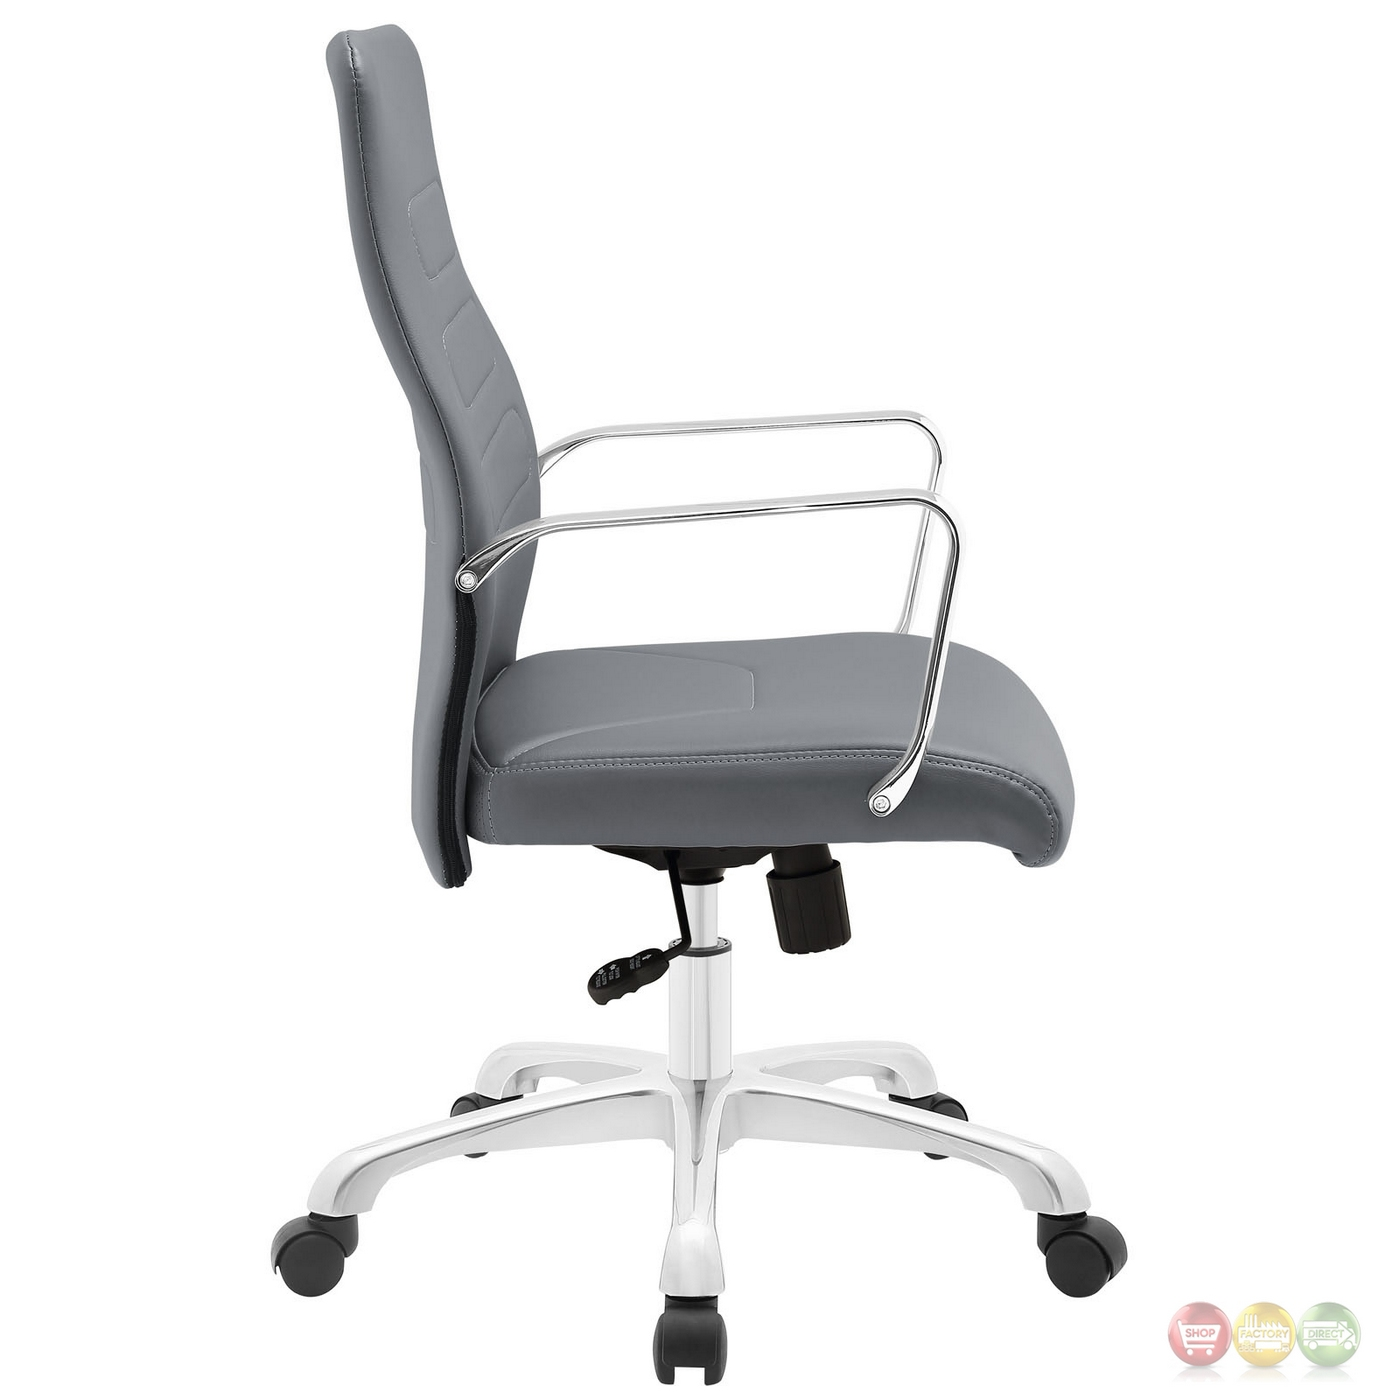 modern aluminum chair dxracer king gaming review depict upholstered mid back office with